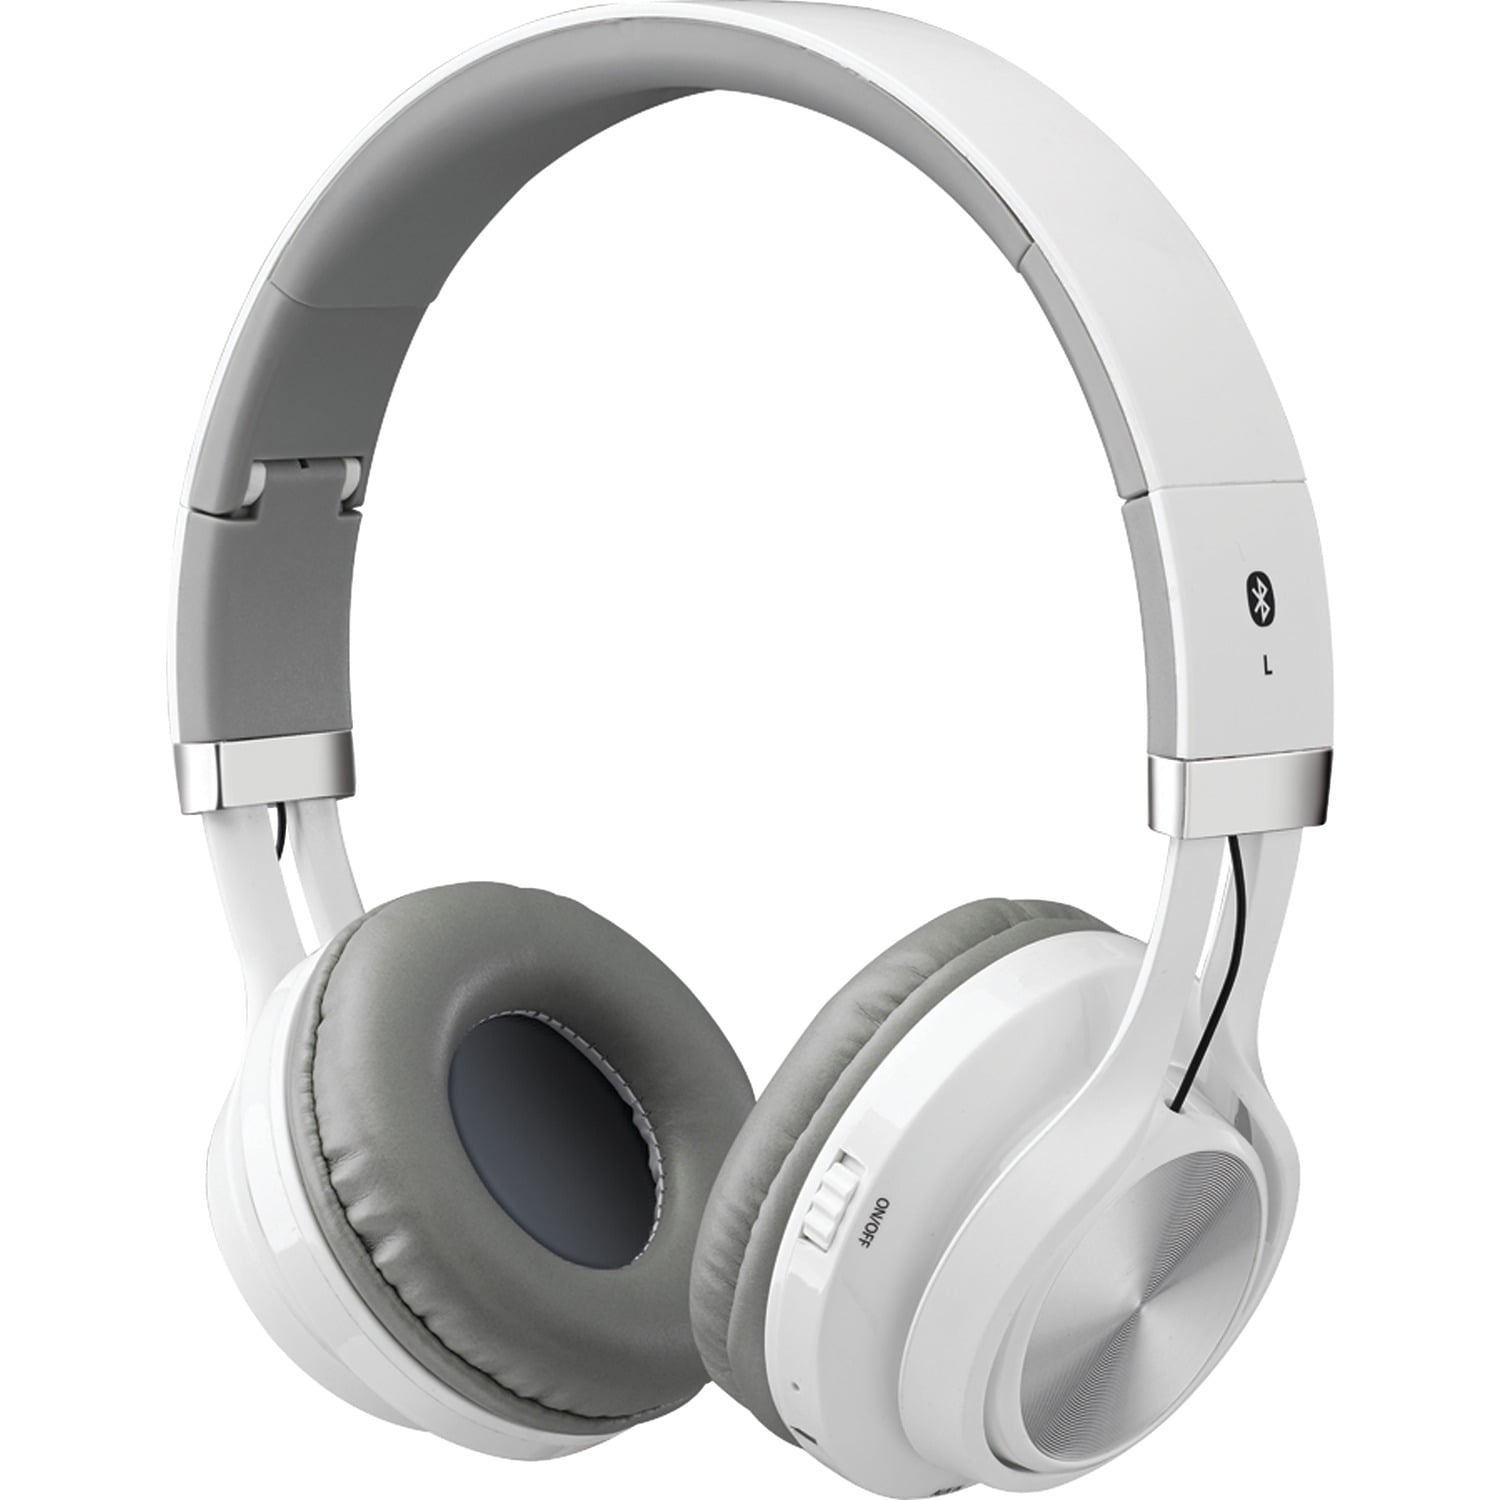 Bluetooth Wireless Headset Walmart: ILive IAHB56W Bluetooth Wireless Headphone With Microphone, White